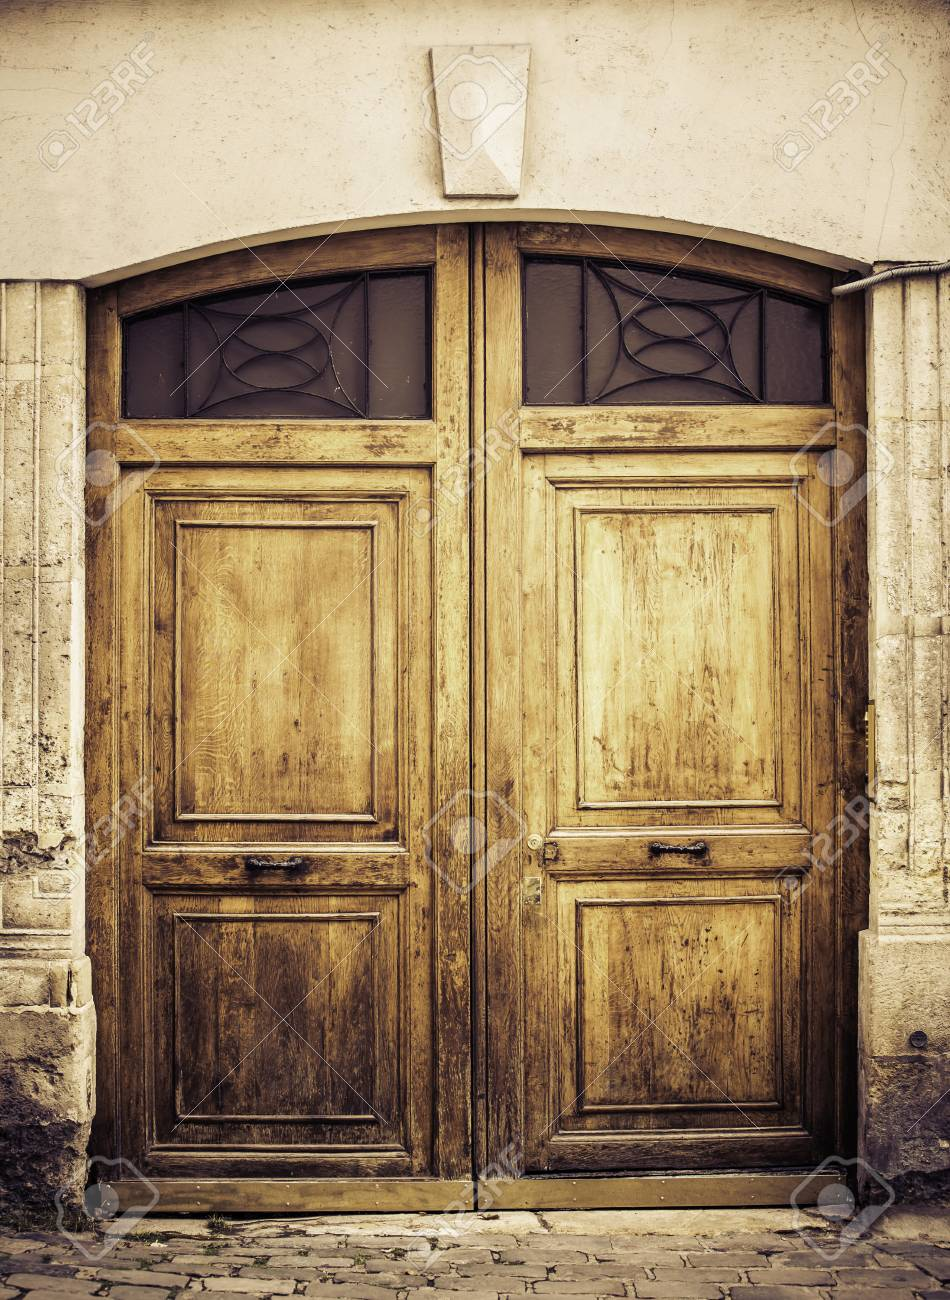 Old Wooden Arch Entry Door Paris France Stock Photo Picture And